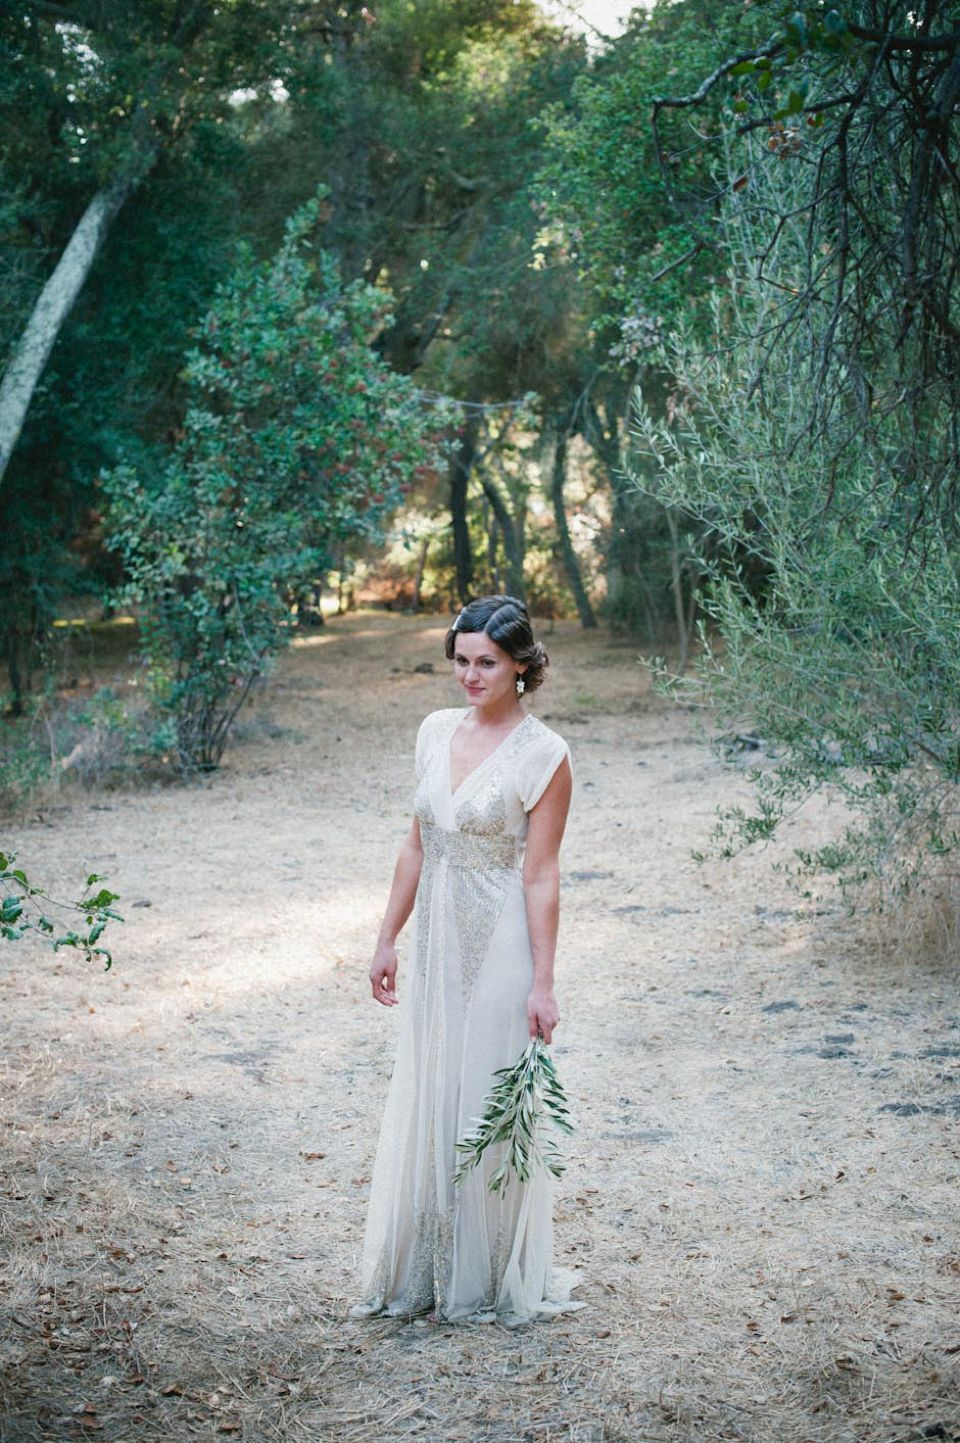 Anna sui sequins for a barefoot bride and her grecian style wedding